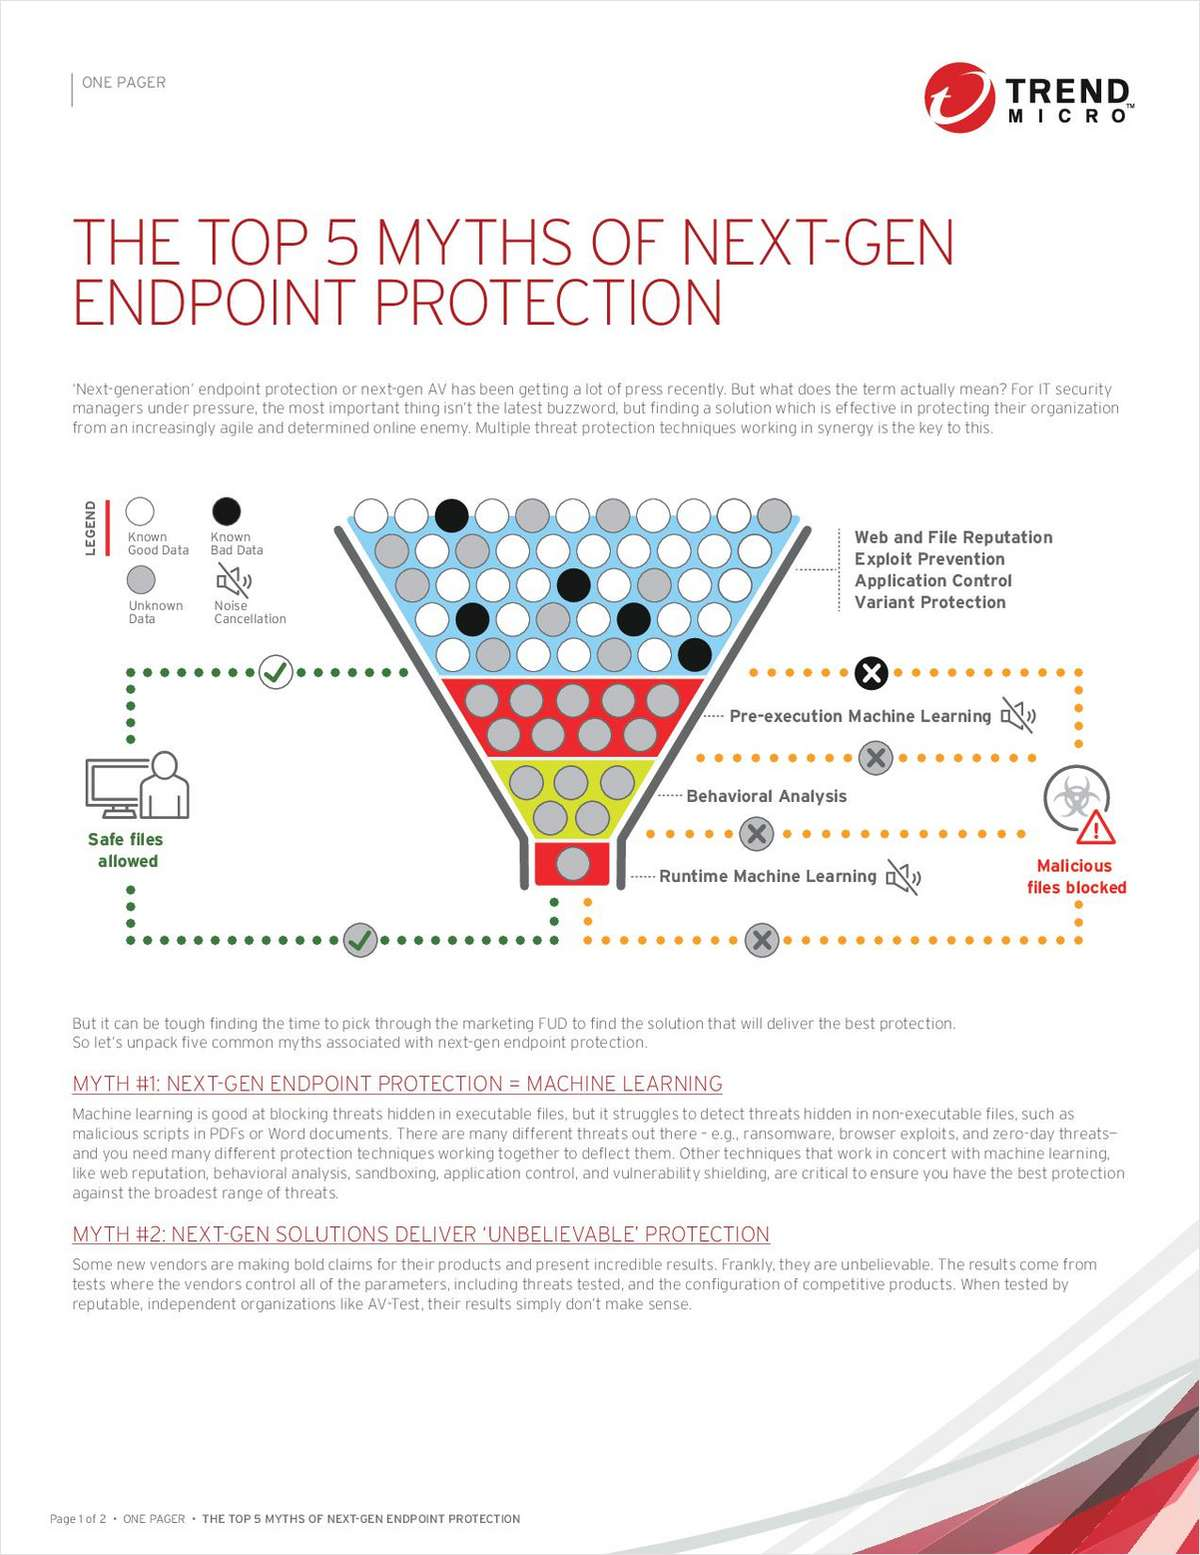 The Top 5 Myths of Next-Gen Endpoint Protection